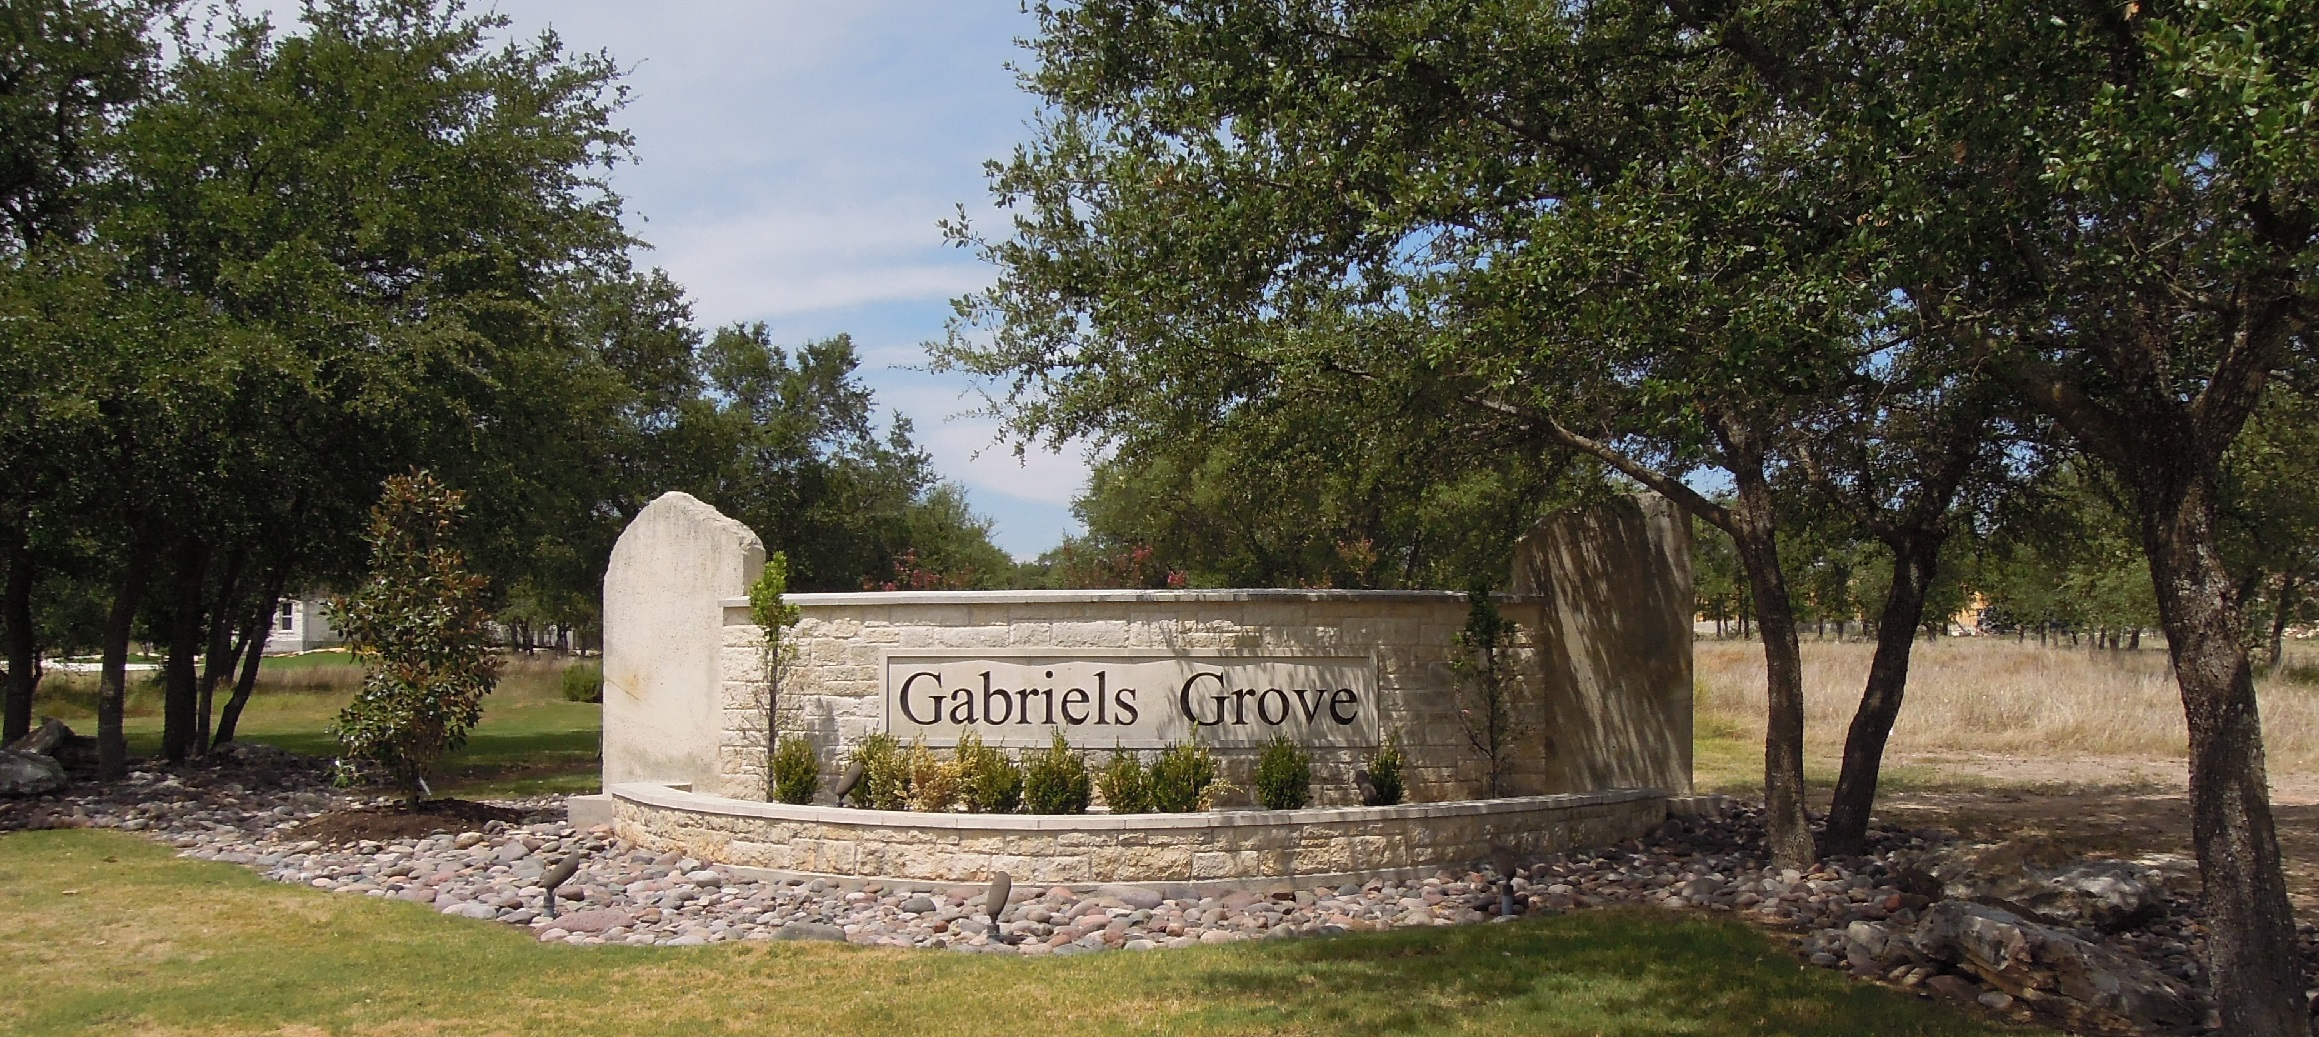 Gabriels Grove Entry.jpg